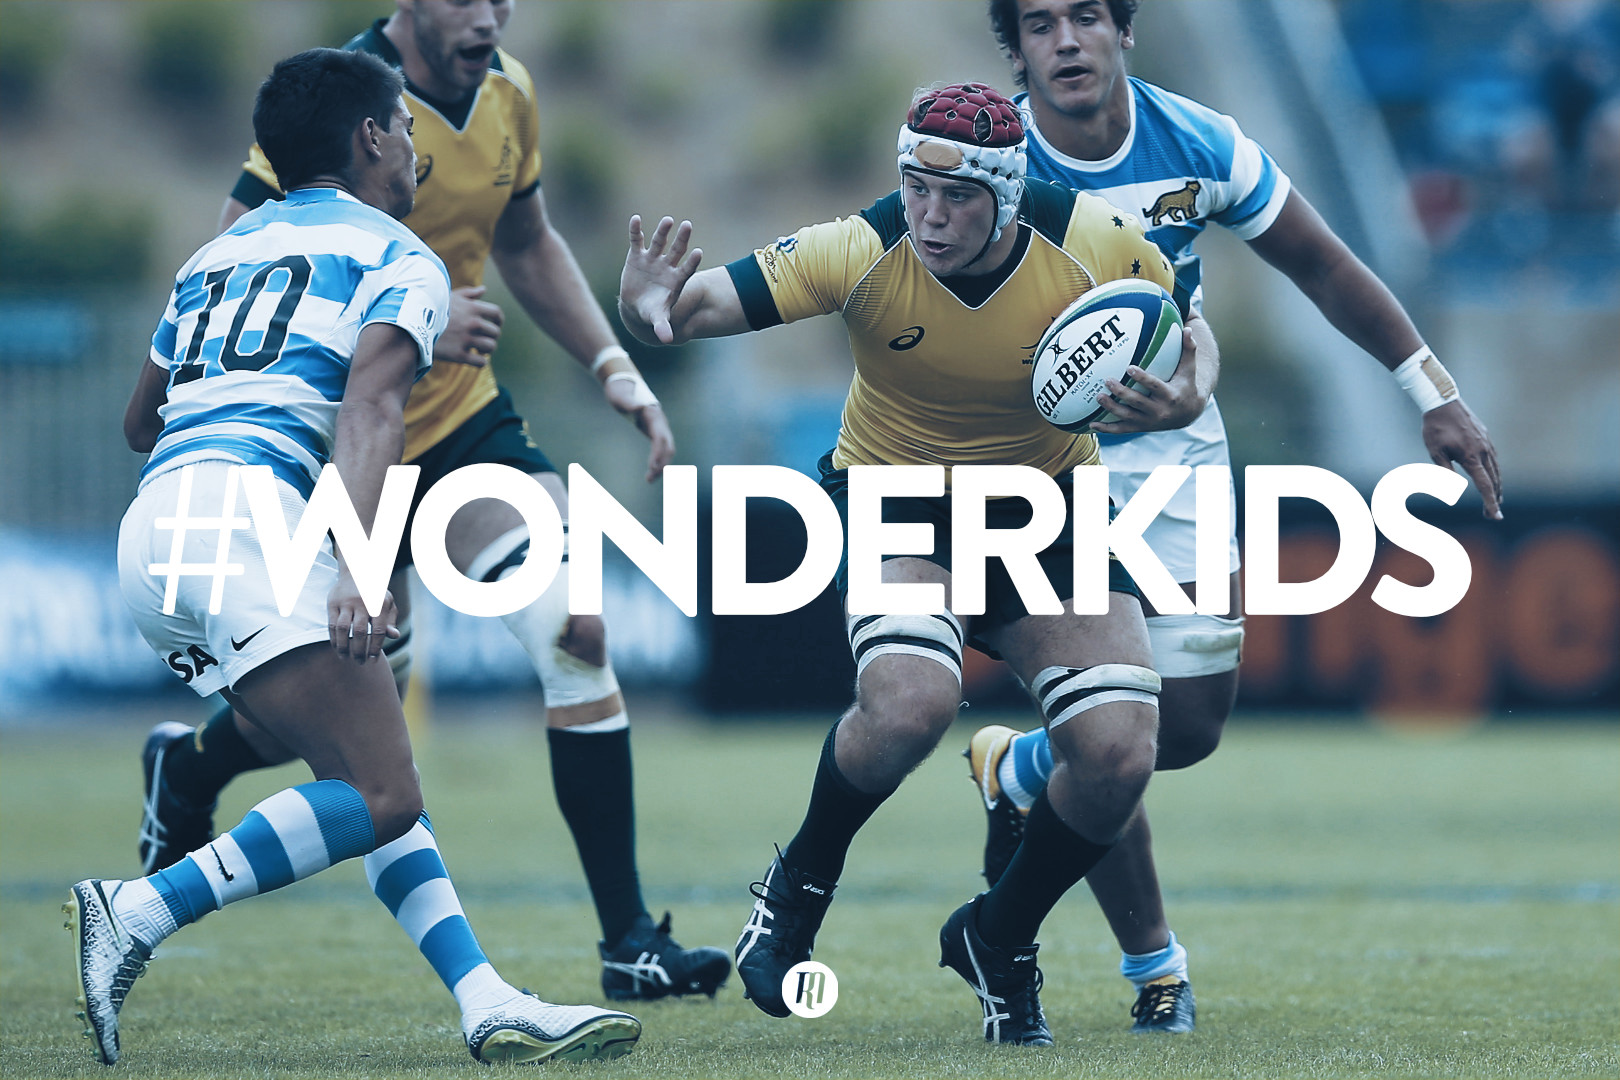 Wonderkids: Baby Boks and Junior Wallabies Doing Their Part In Hemispherical Rebalance